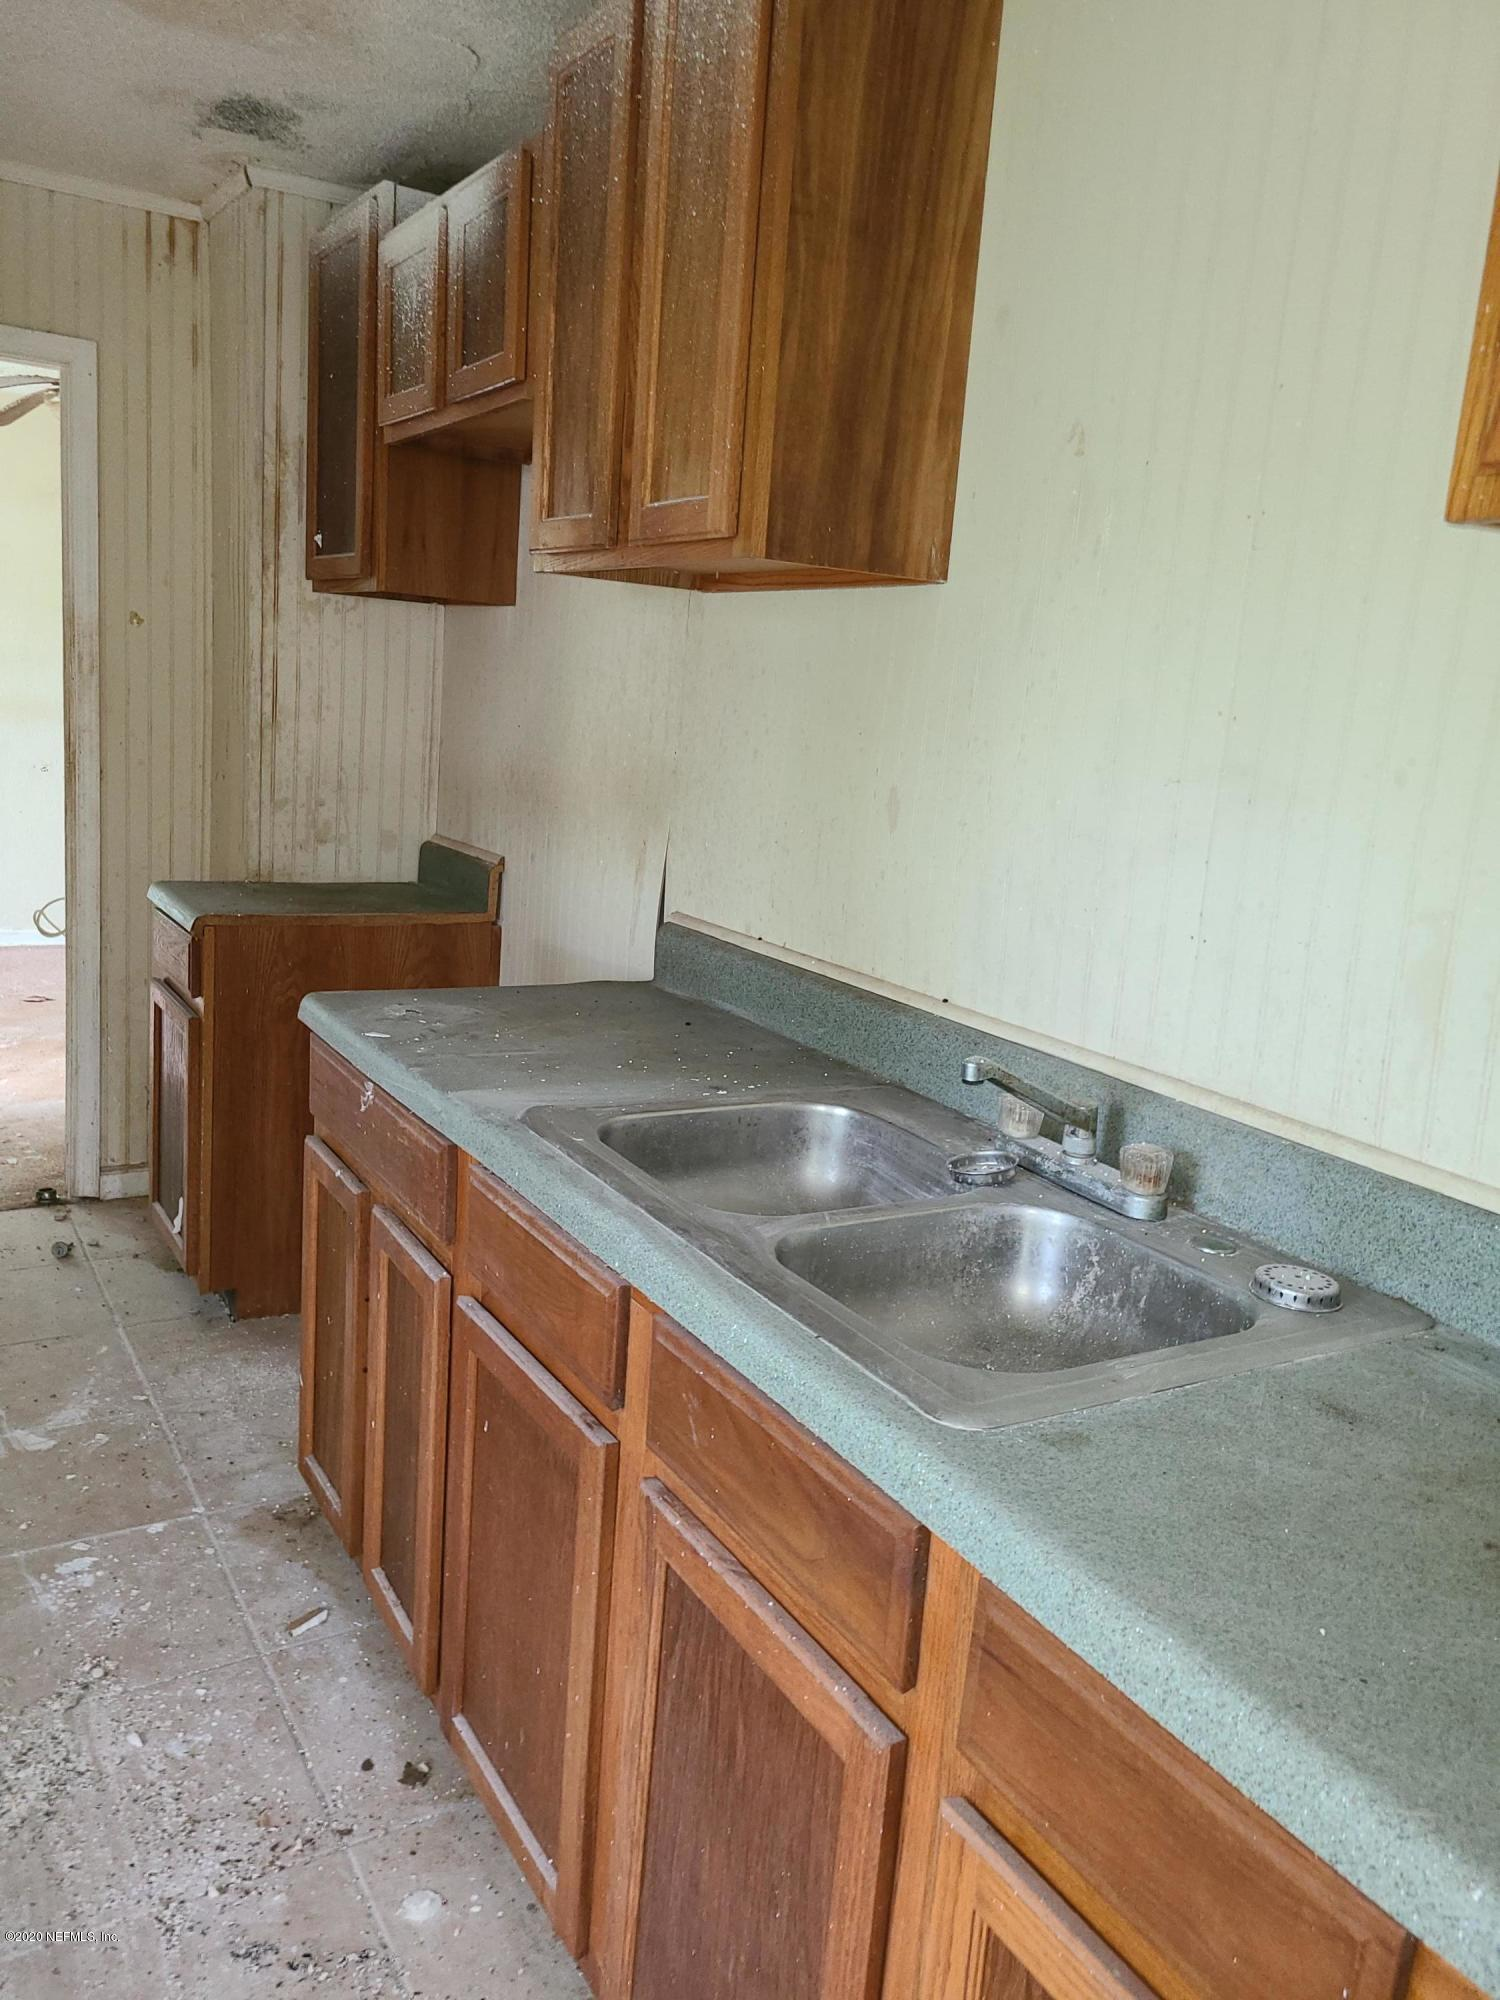 8817 6TH, JACKSONVILLE, FLORIDA 32208, 3 Bedrooms Bedrooms, ,2 BathroomsBathrooms,Residential,For sale,6TH,1077908